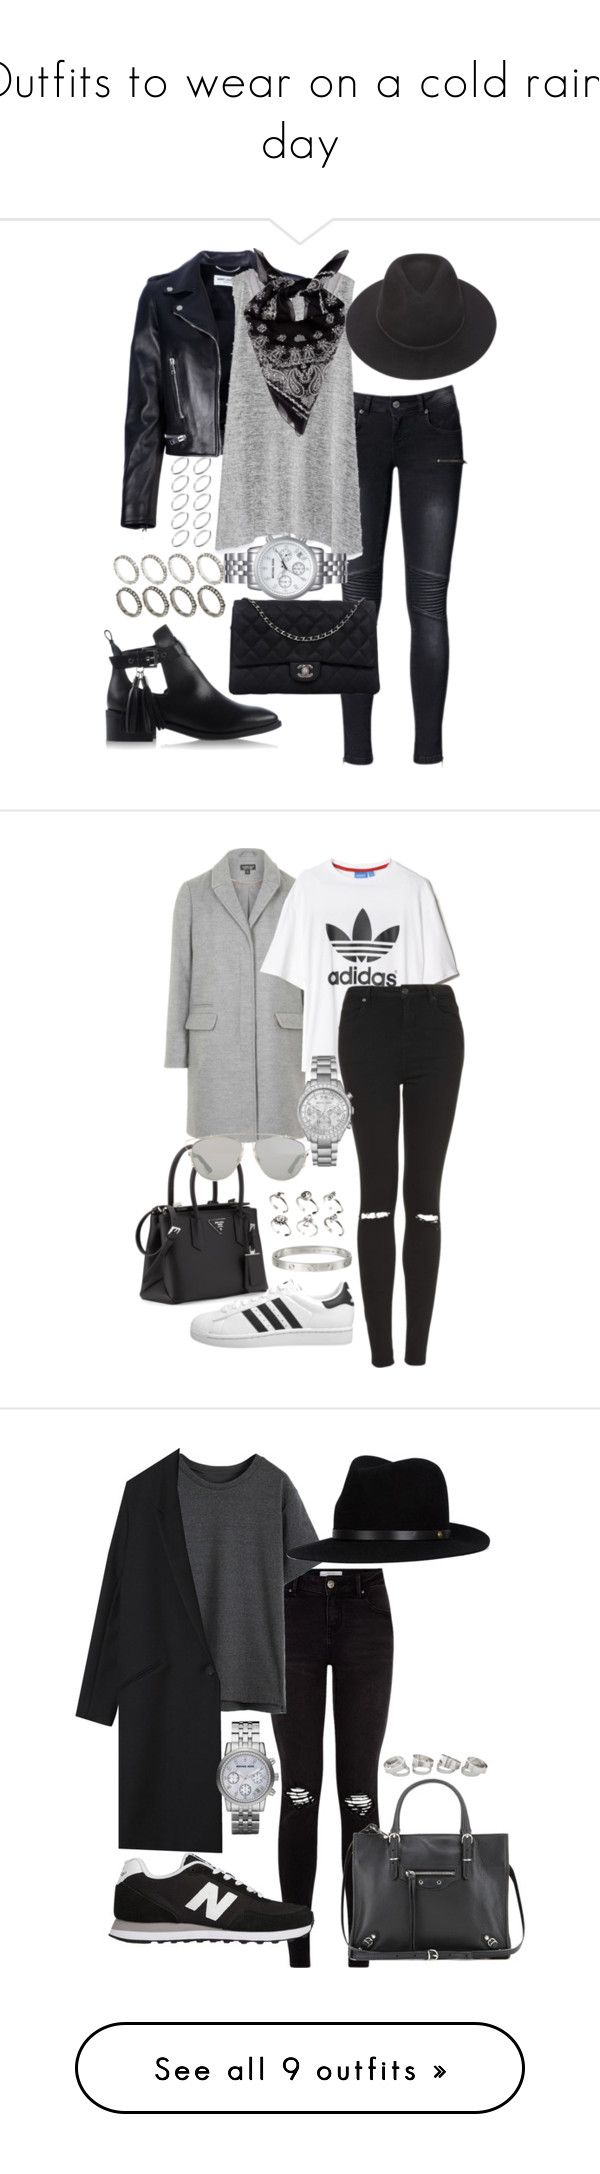 """""""Outfits to wear on a cold rainy day"""" by blendingtwostyles ❤ liked on Polyvore featuring Anine Bing, Yves Saint Laurent, Zara, Brixton, Chanel, KG Kurt Geiger, ASOS, Michael Kors, adidas Originals and Topshop"""